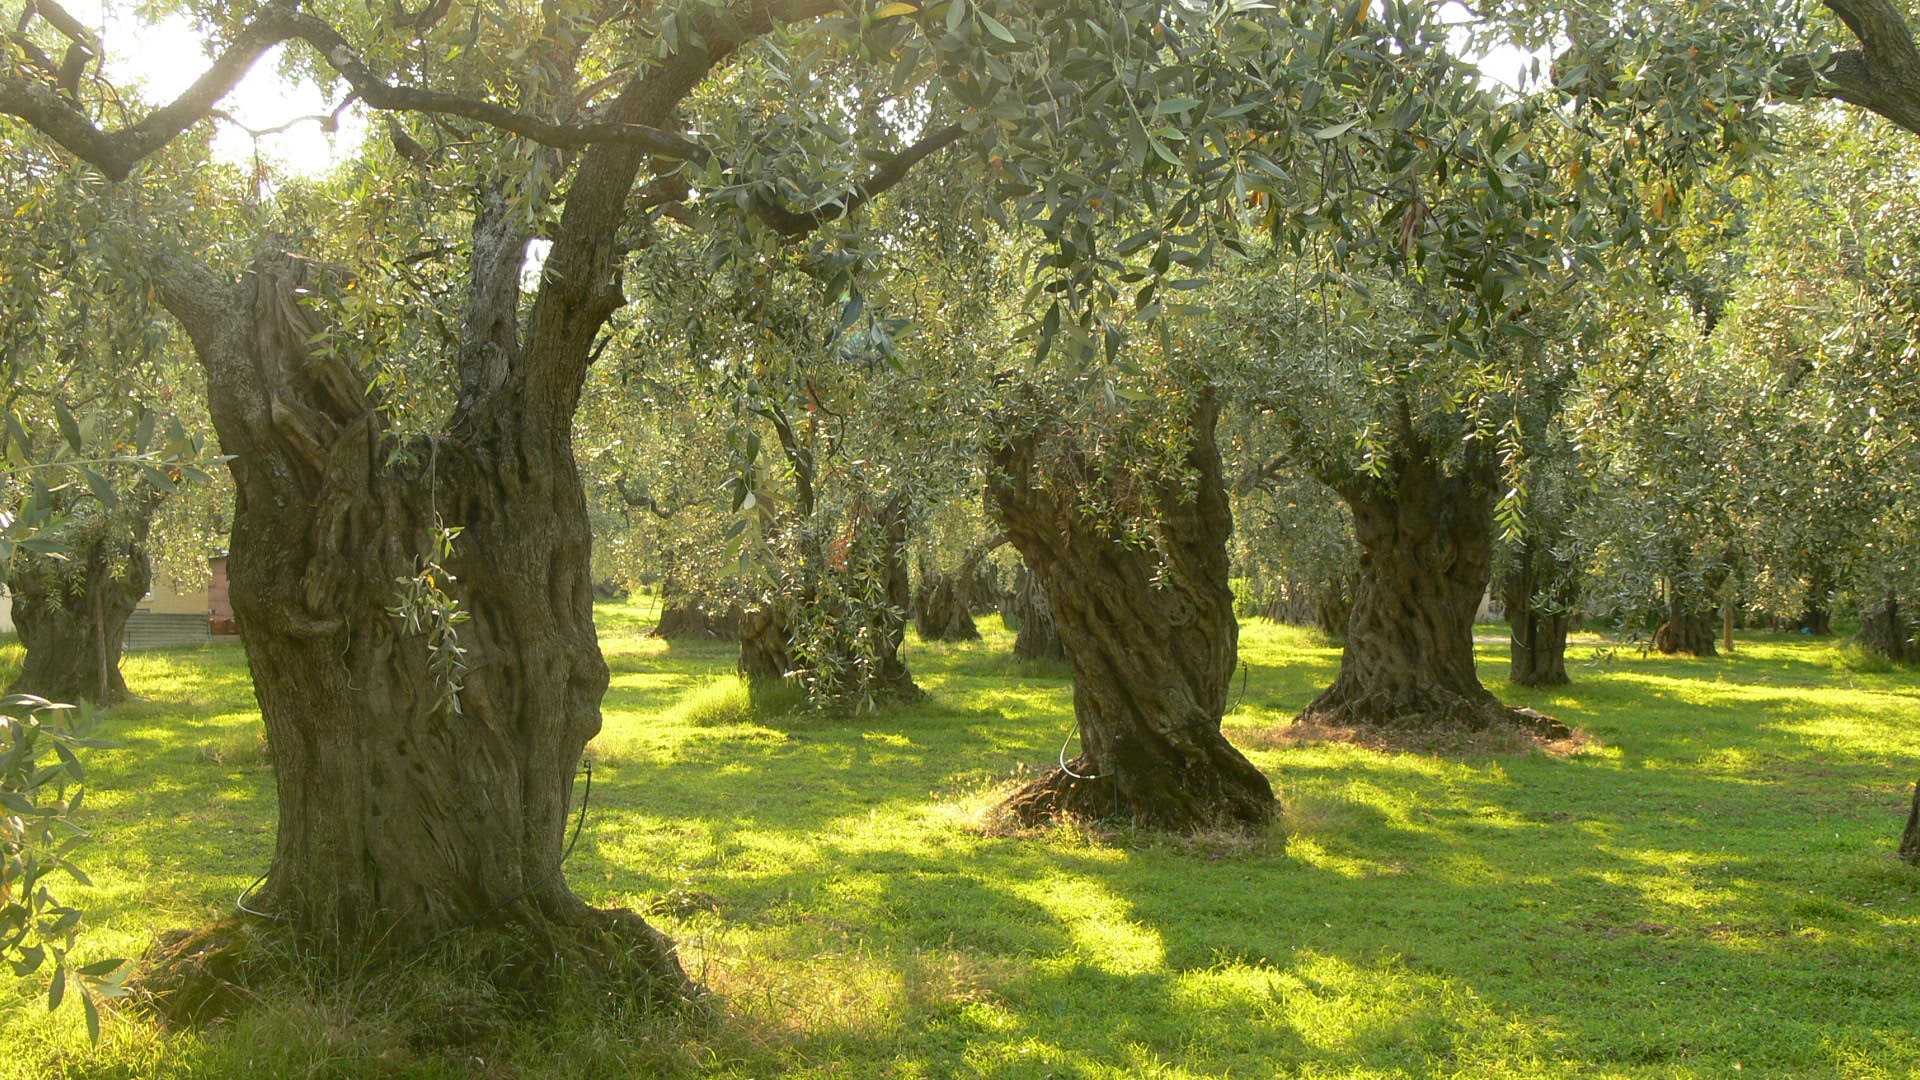 Book of Mormon Lesson 13: The Allegory of the Olive Trees